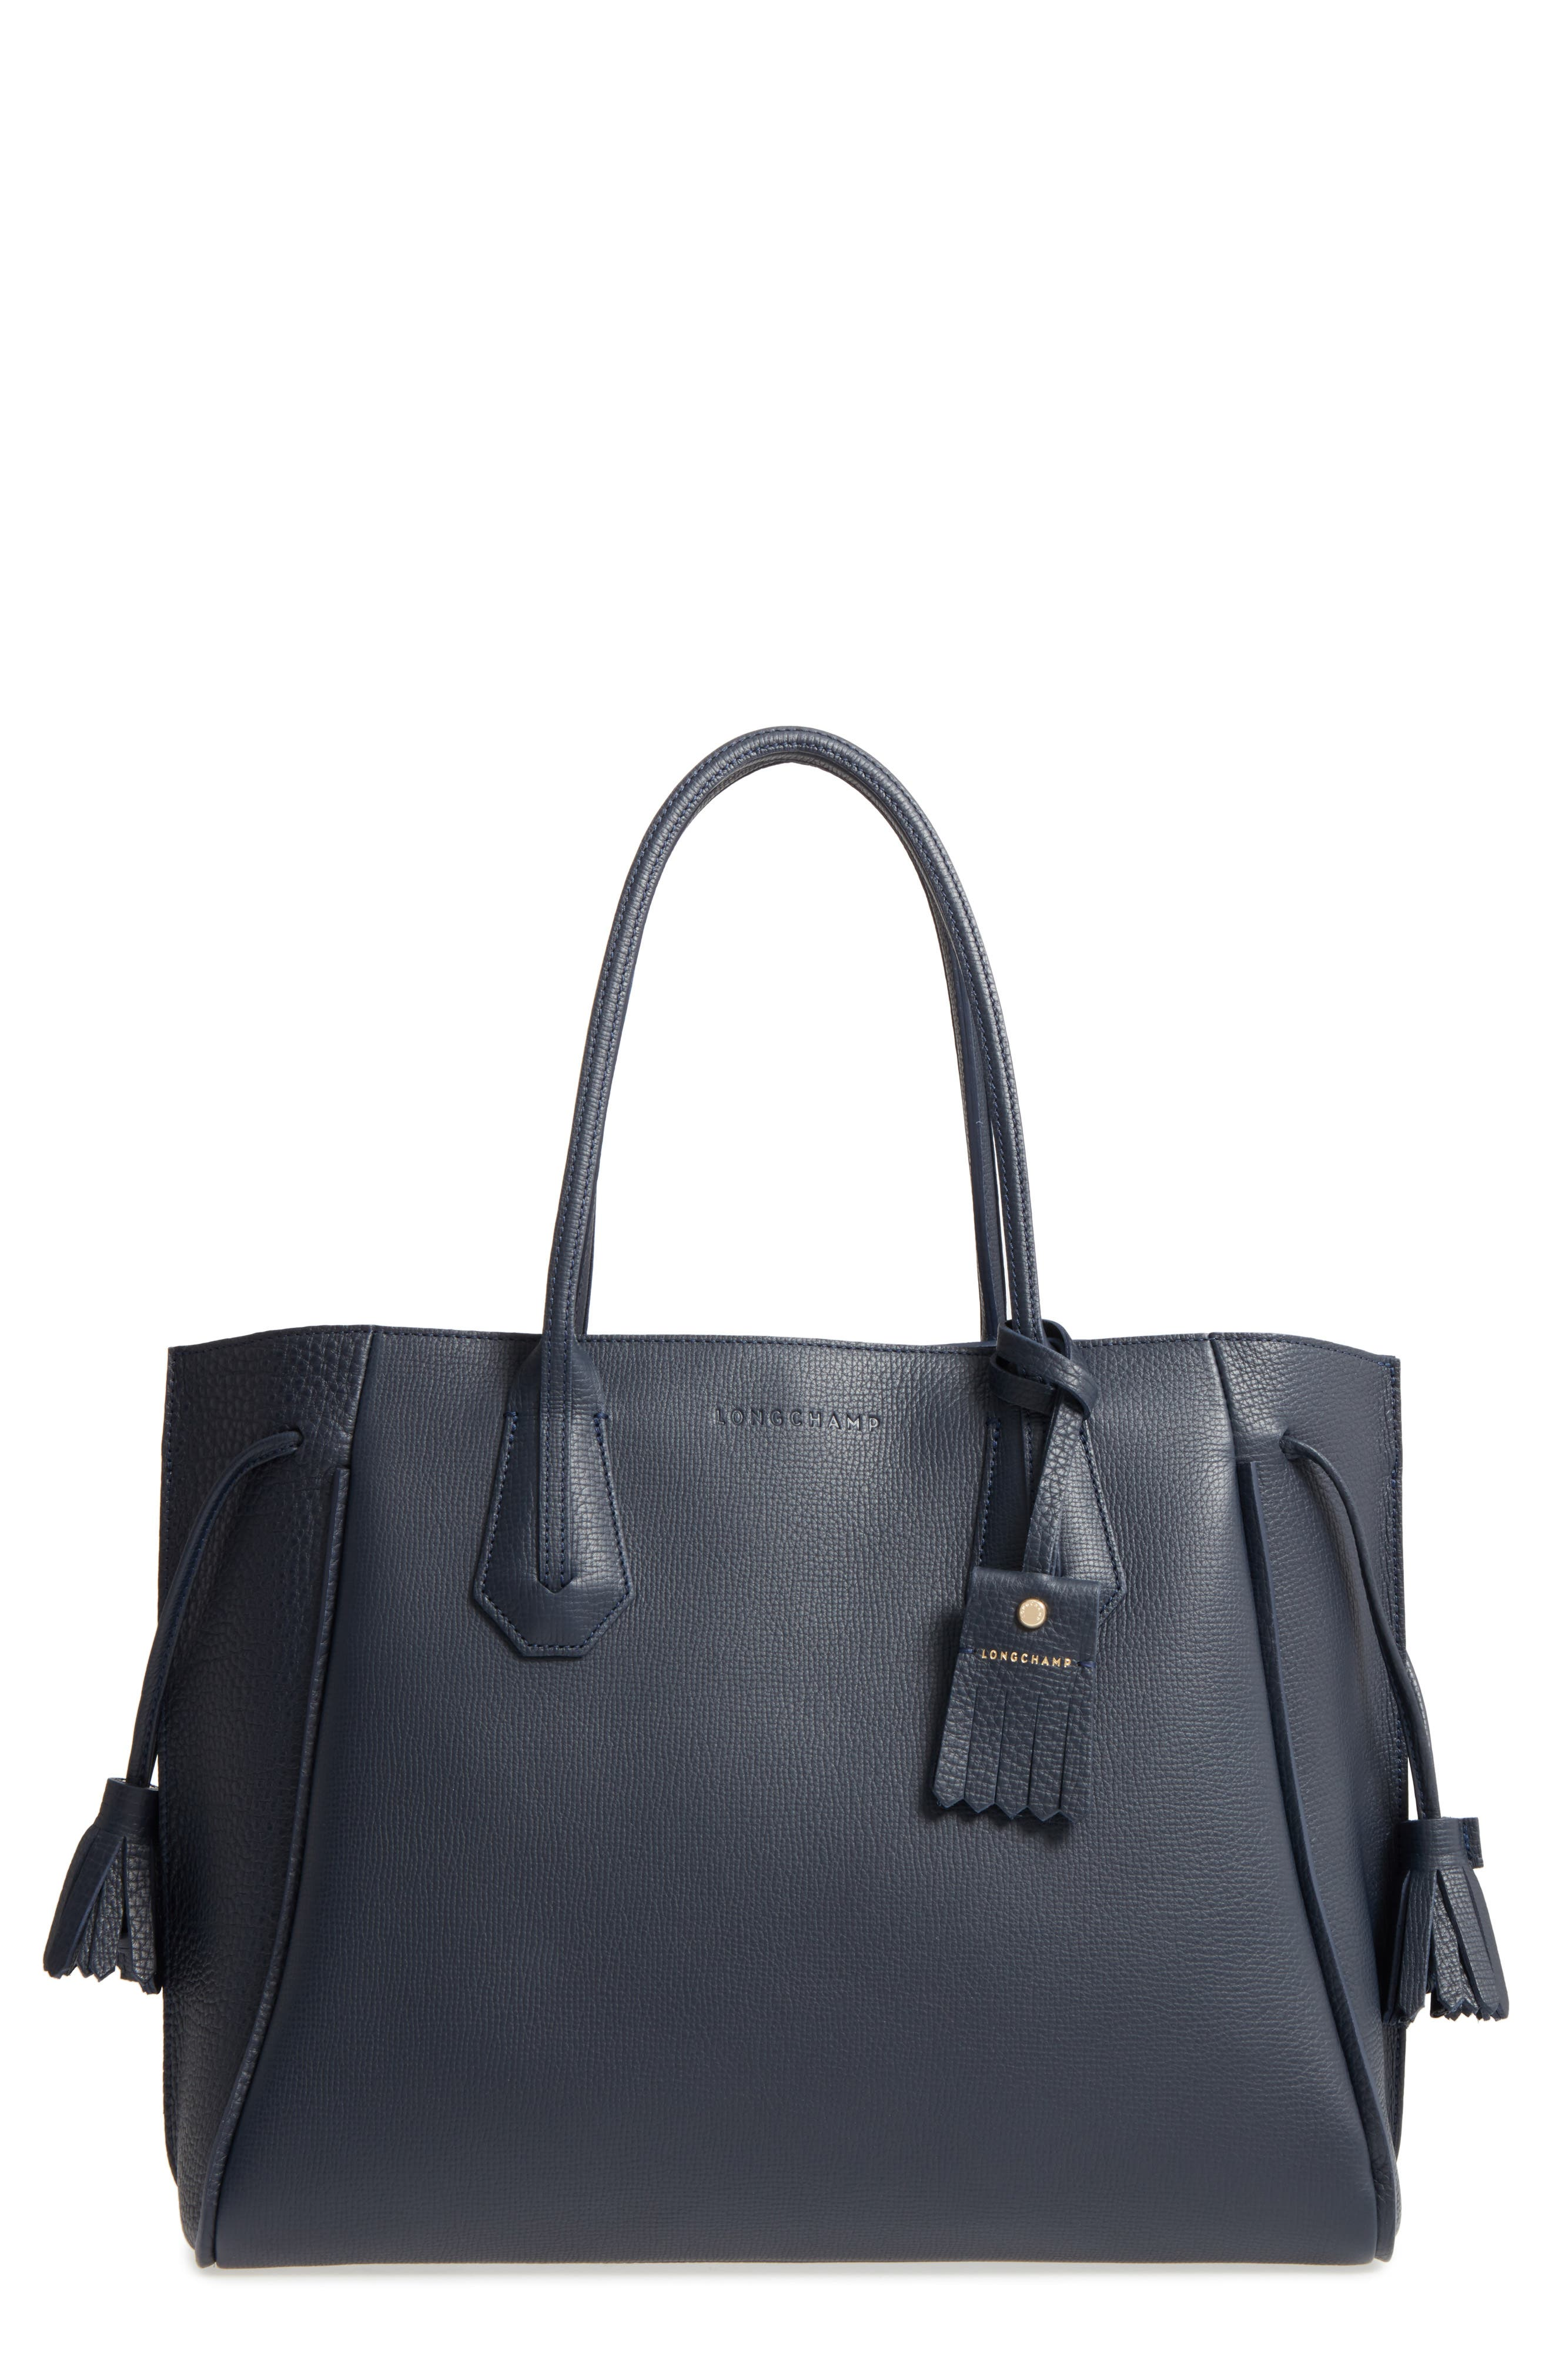 'Penelope' Tassel Drawstring Leather Tote,                             Main thumbnail 1, color,                             Midnight